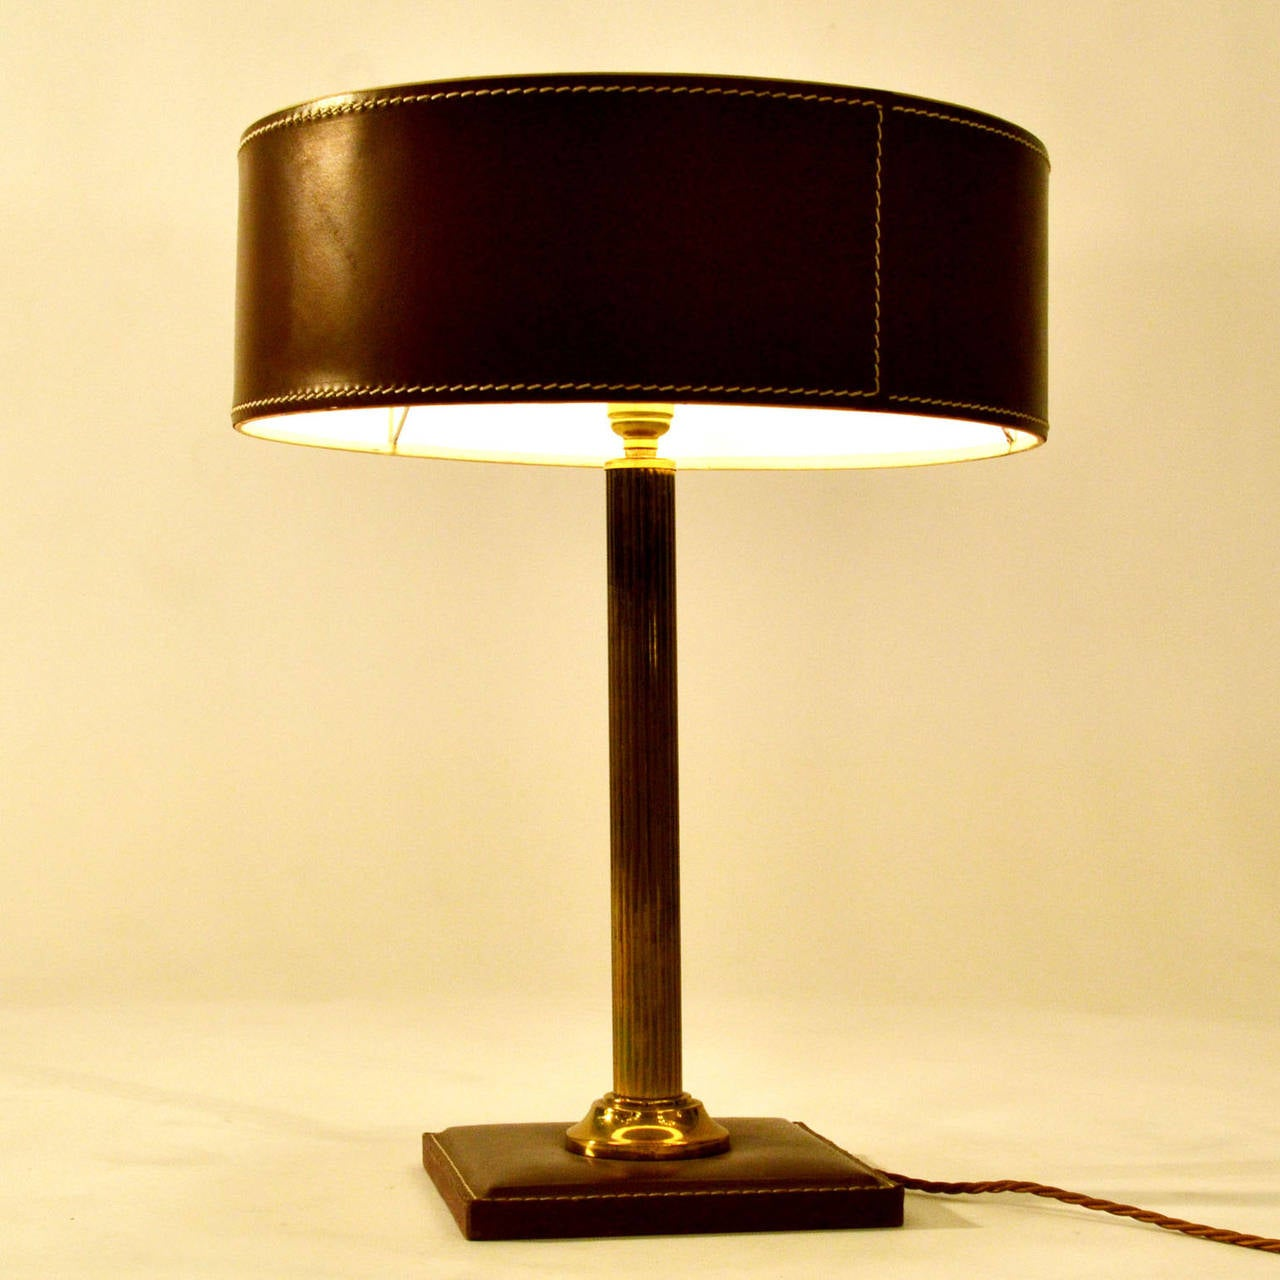 Leather Table Lamp Attributed Adnet For Sale at 1stdibs